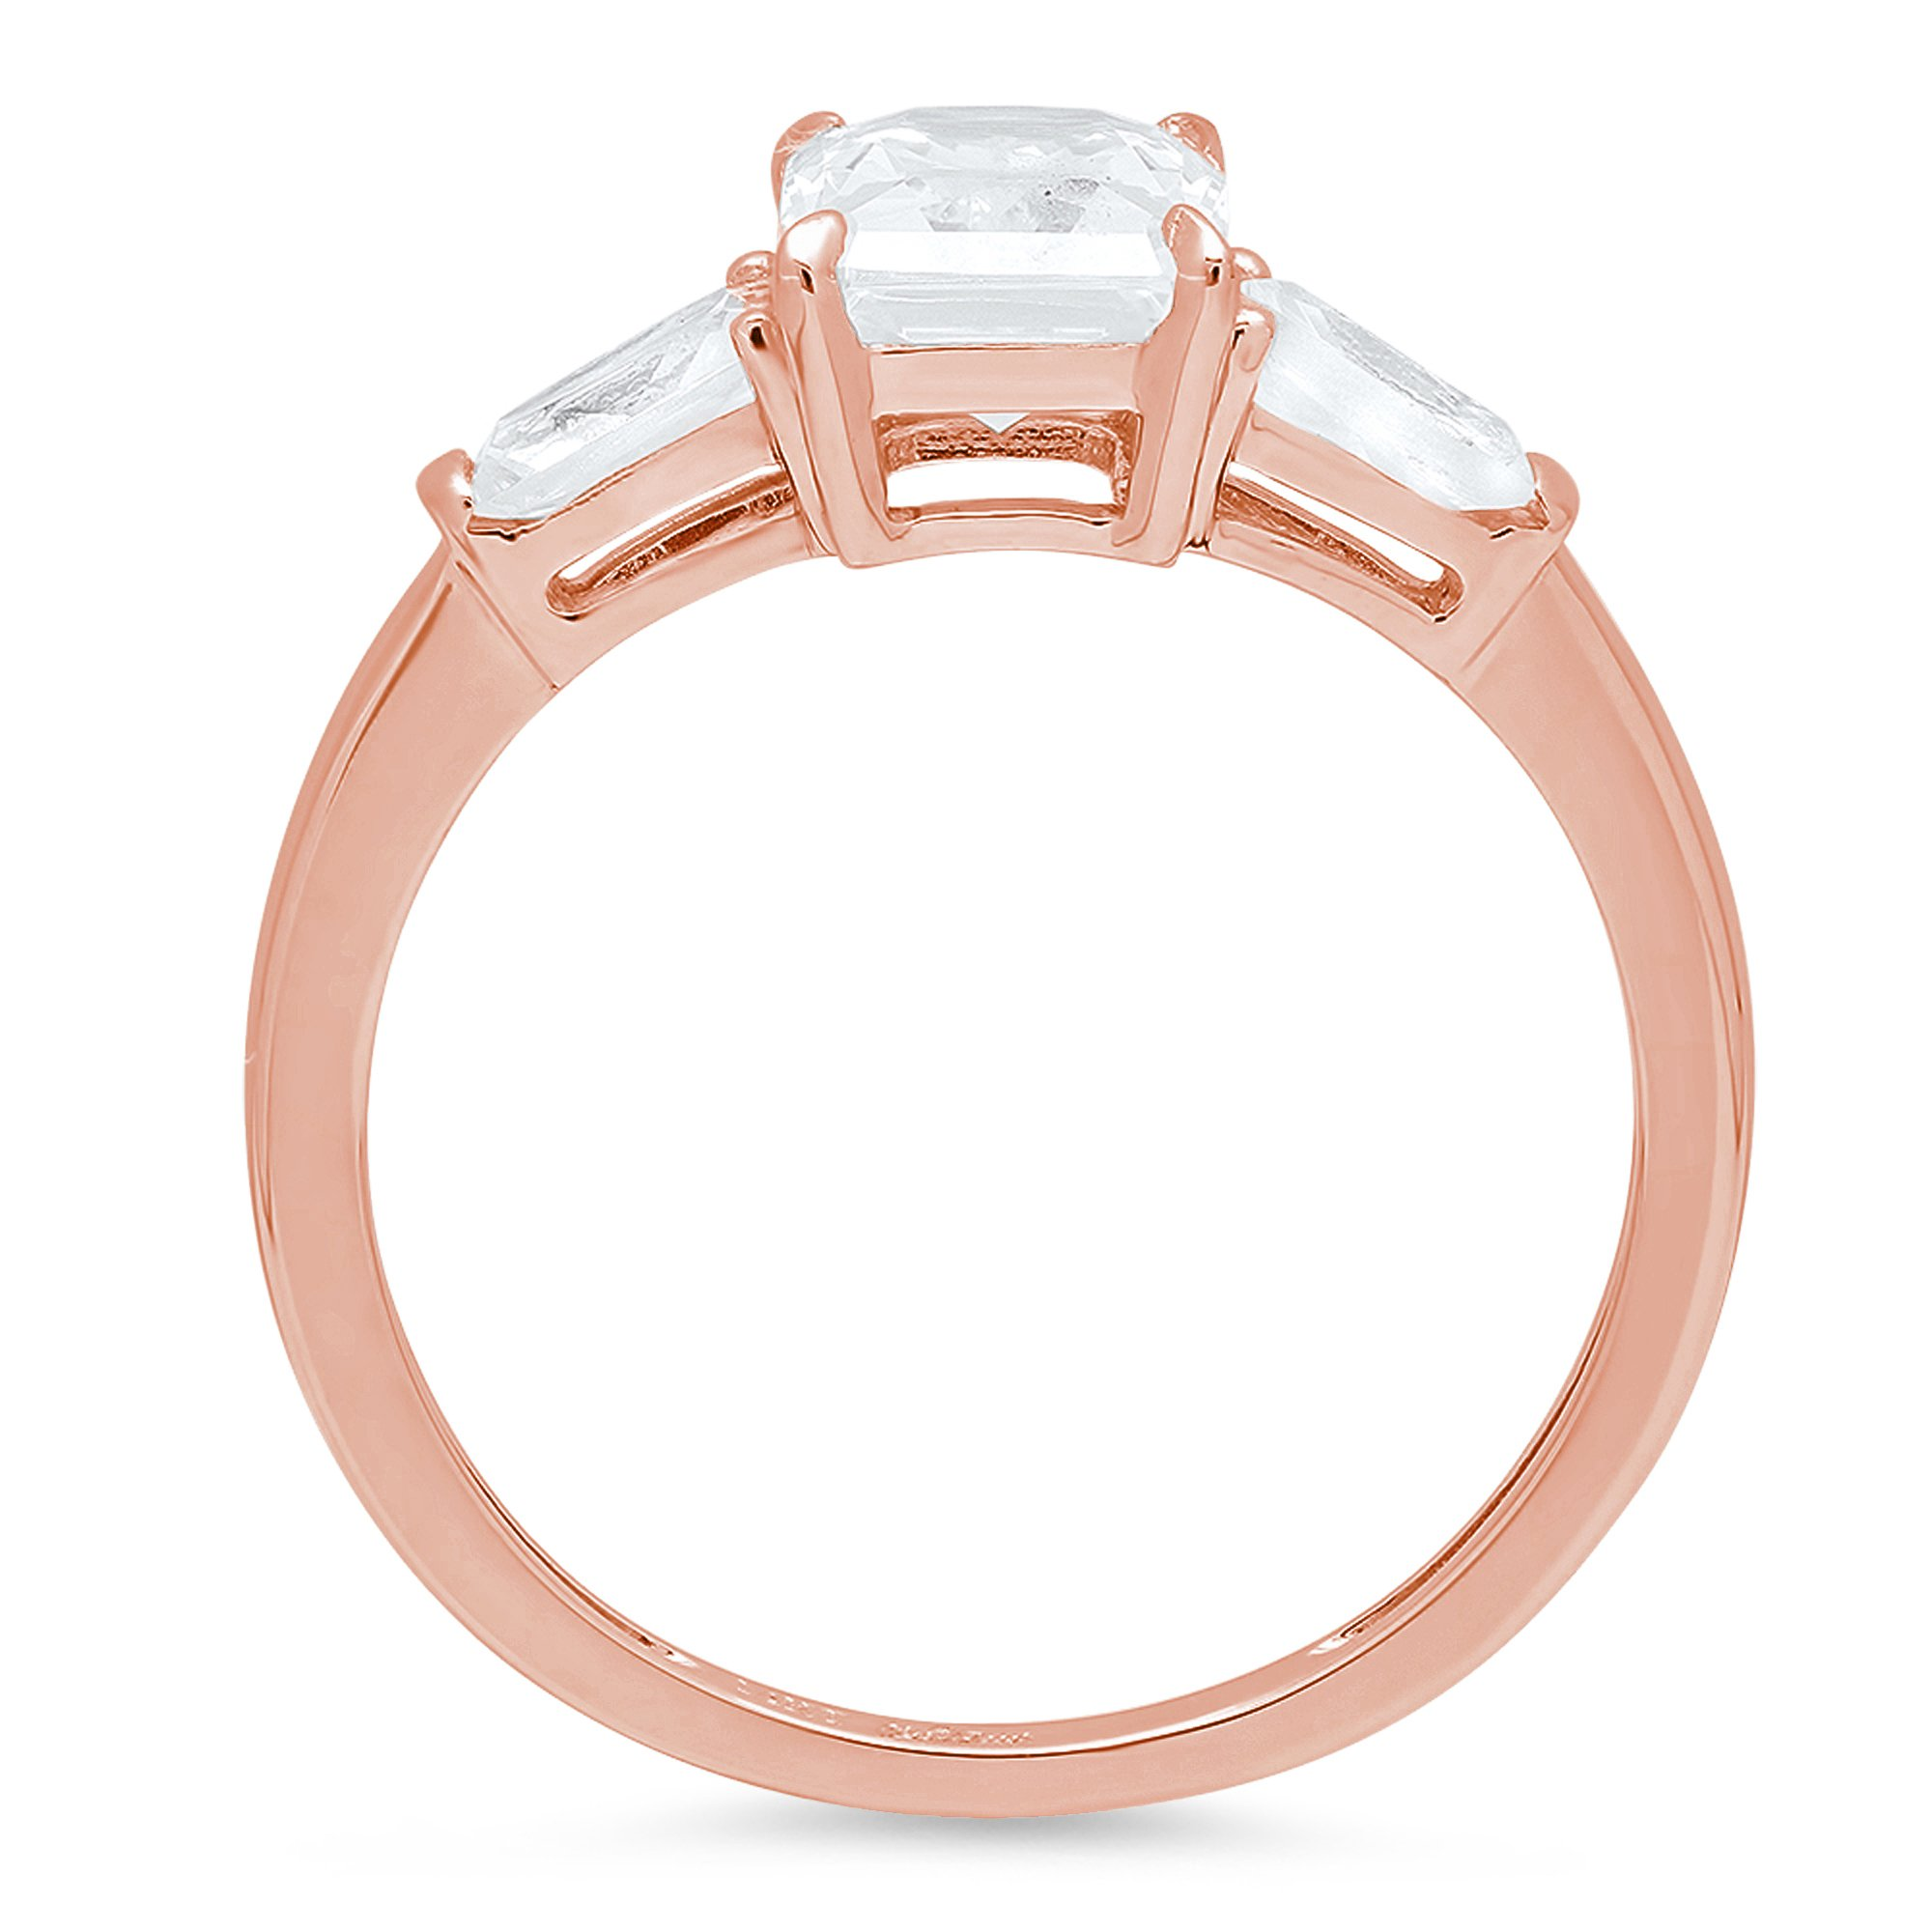 2.0ct Brilliant Emerald Cut Solitaire 3-Stone Engagement Wedding Bridal Anniversary Promise Band Ring Solid 14K Rose Gold for Women, 9.5 by Clara Pucci (Image #2)